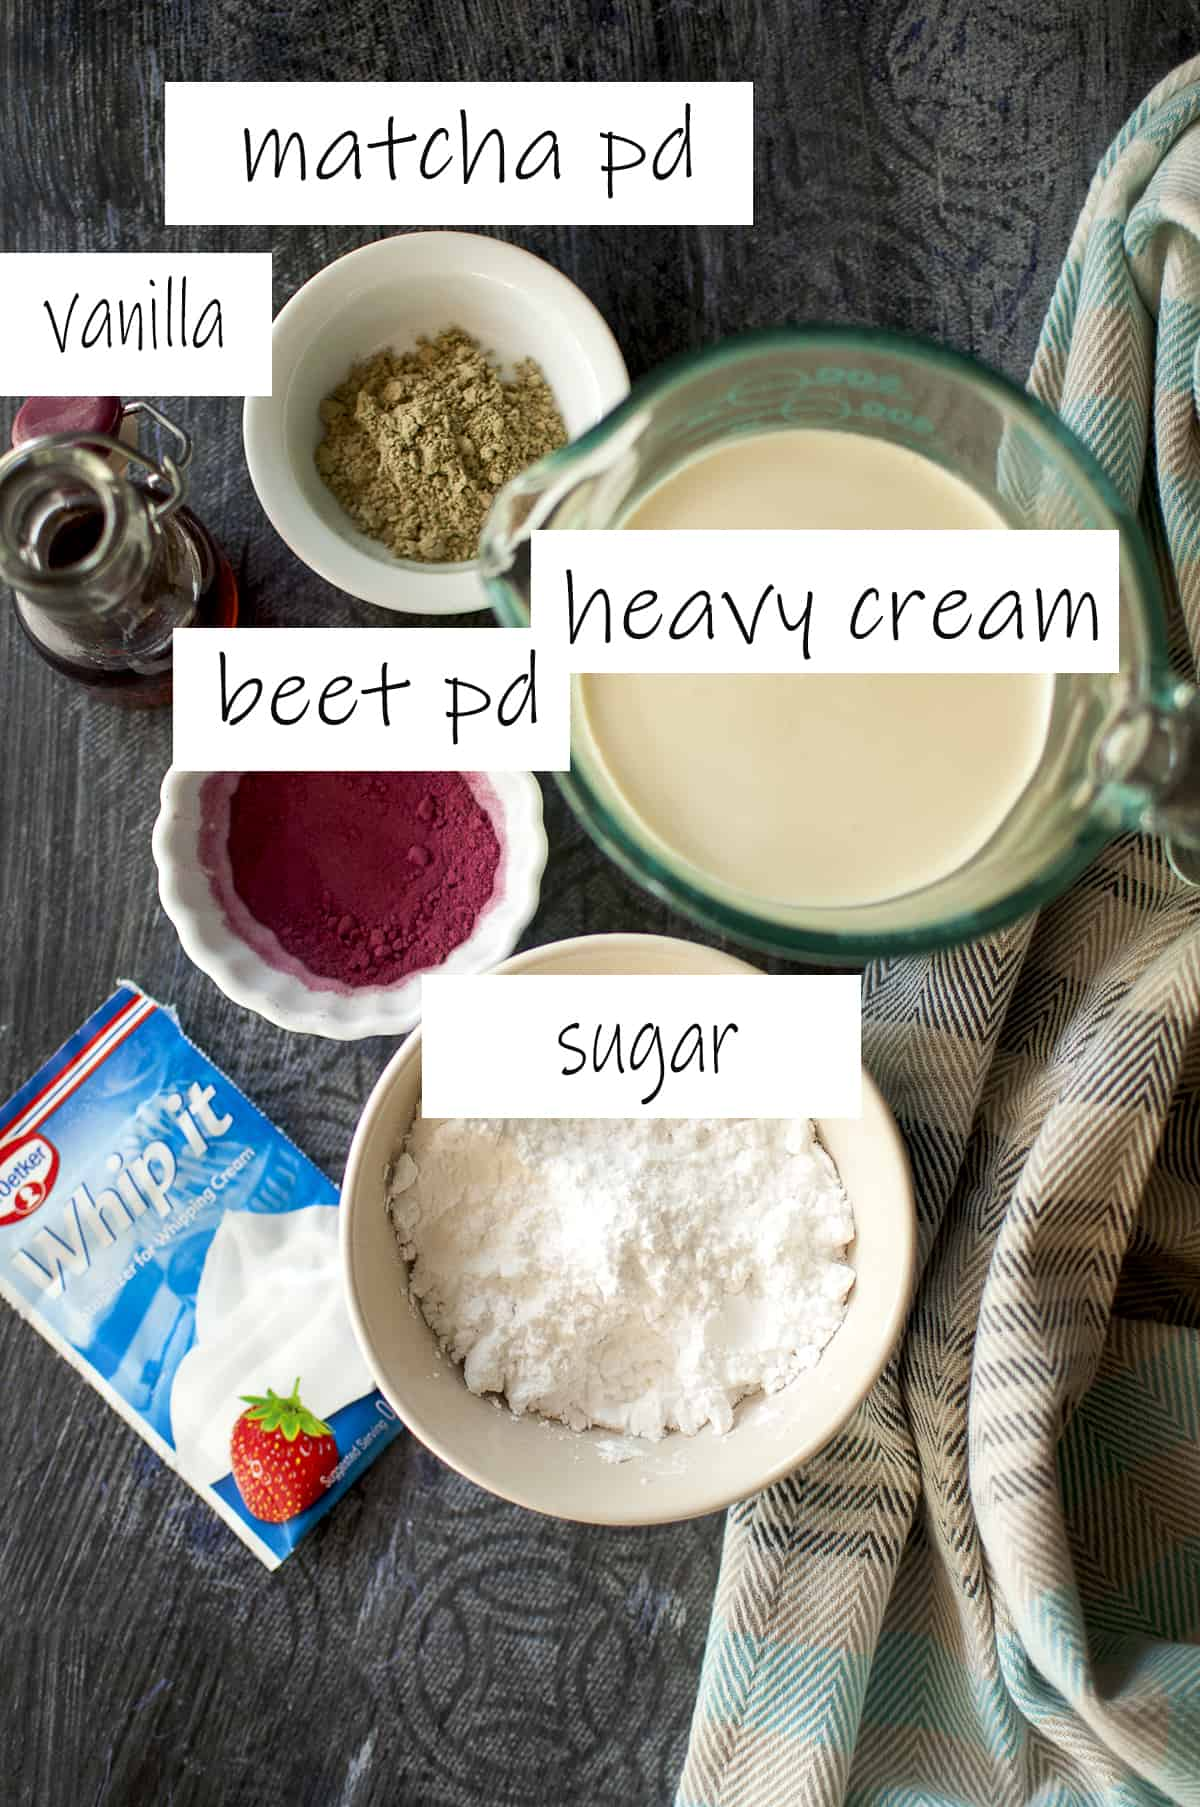 Ingredients needed to make the frosting placed in bowls